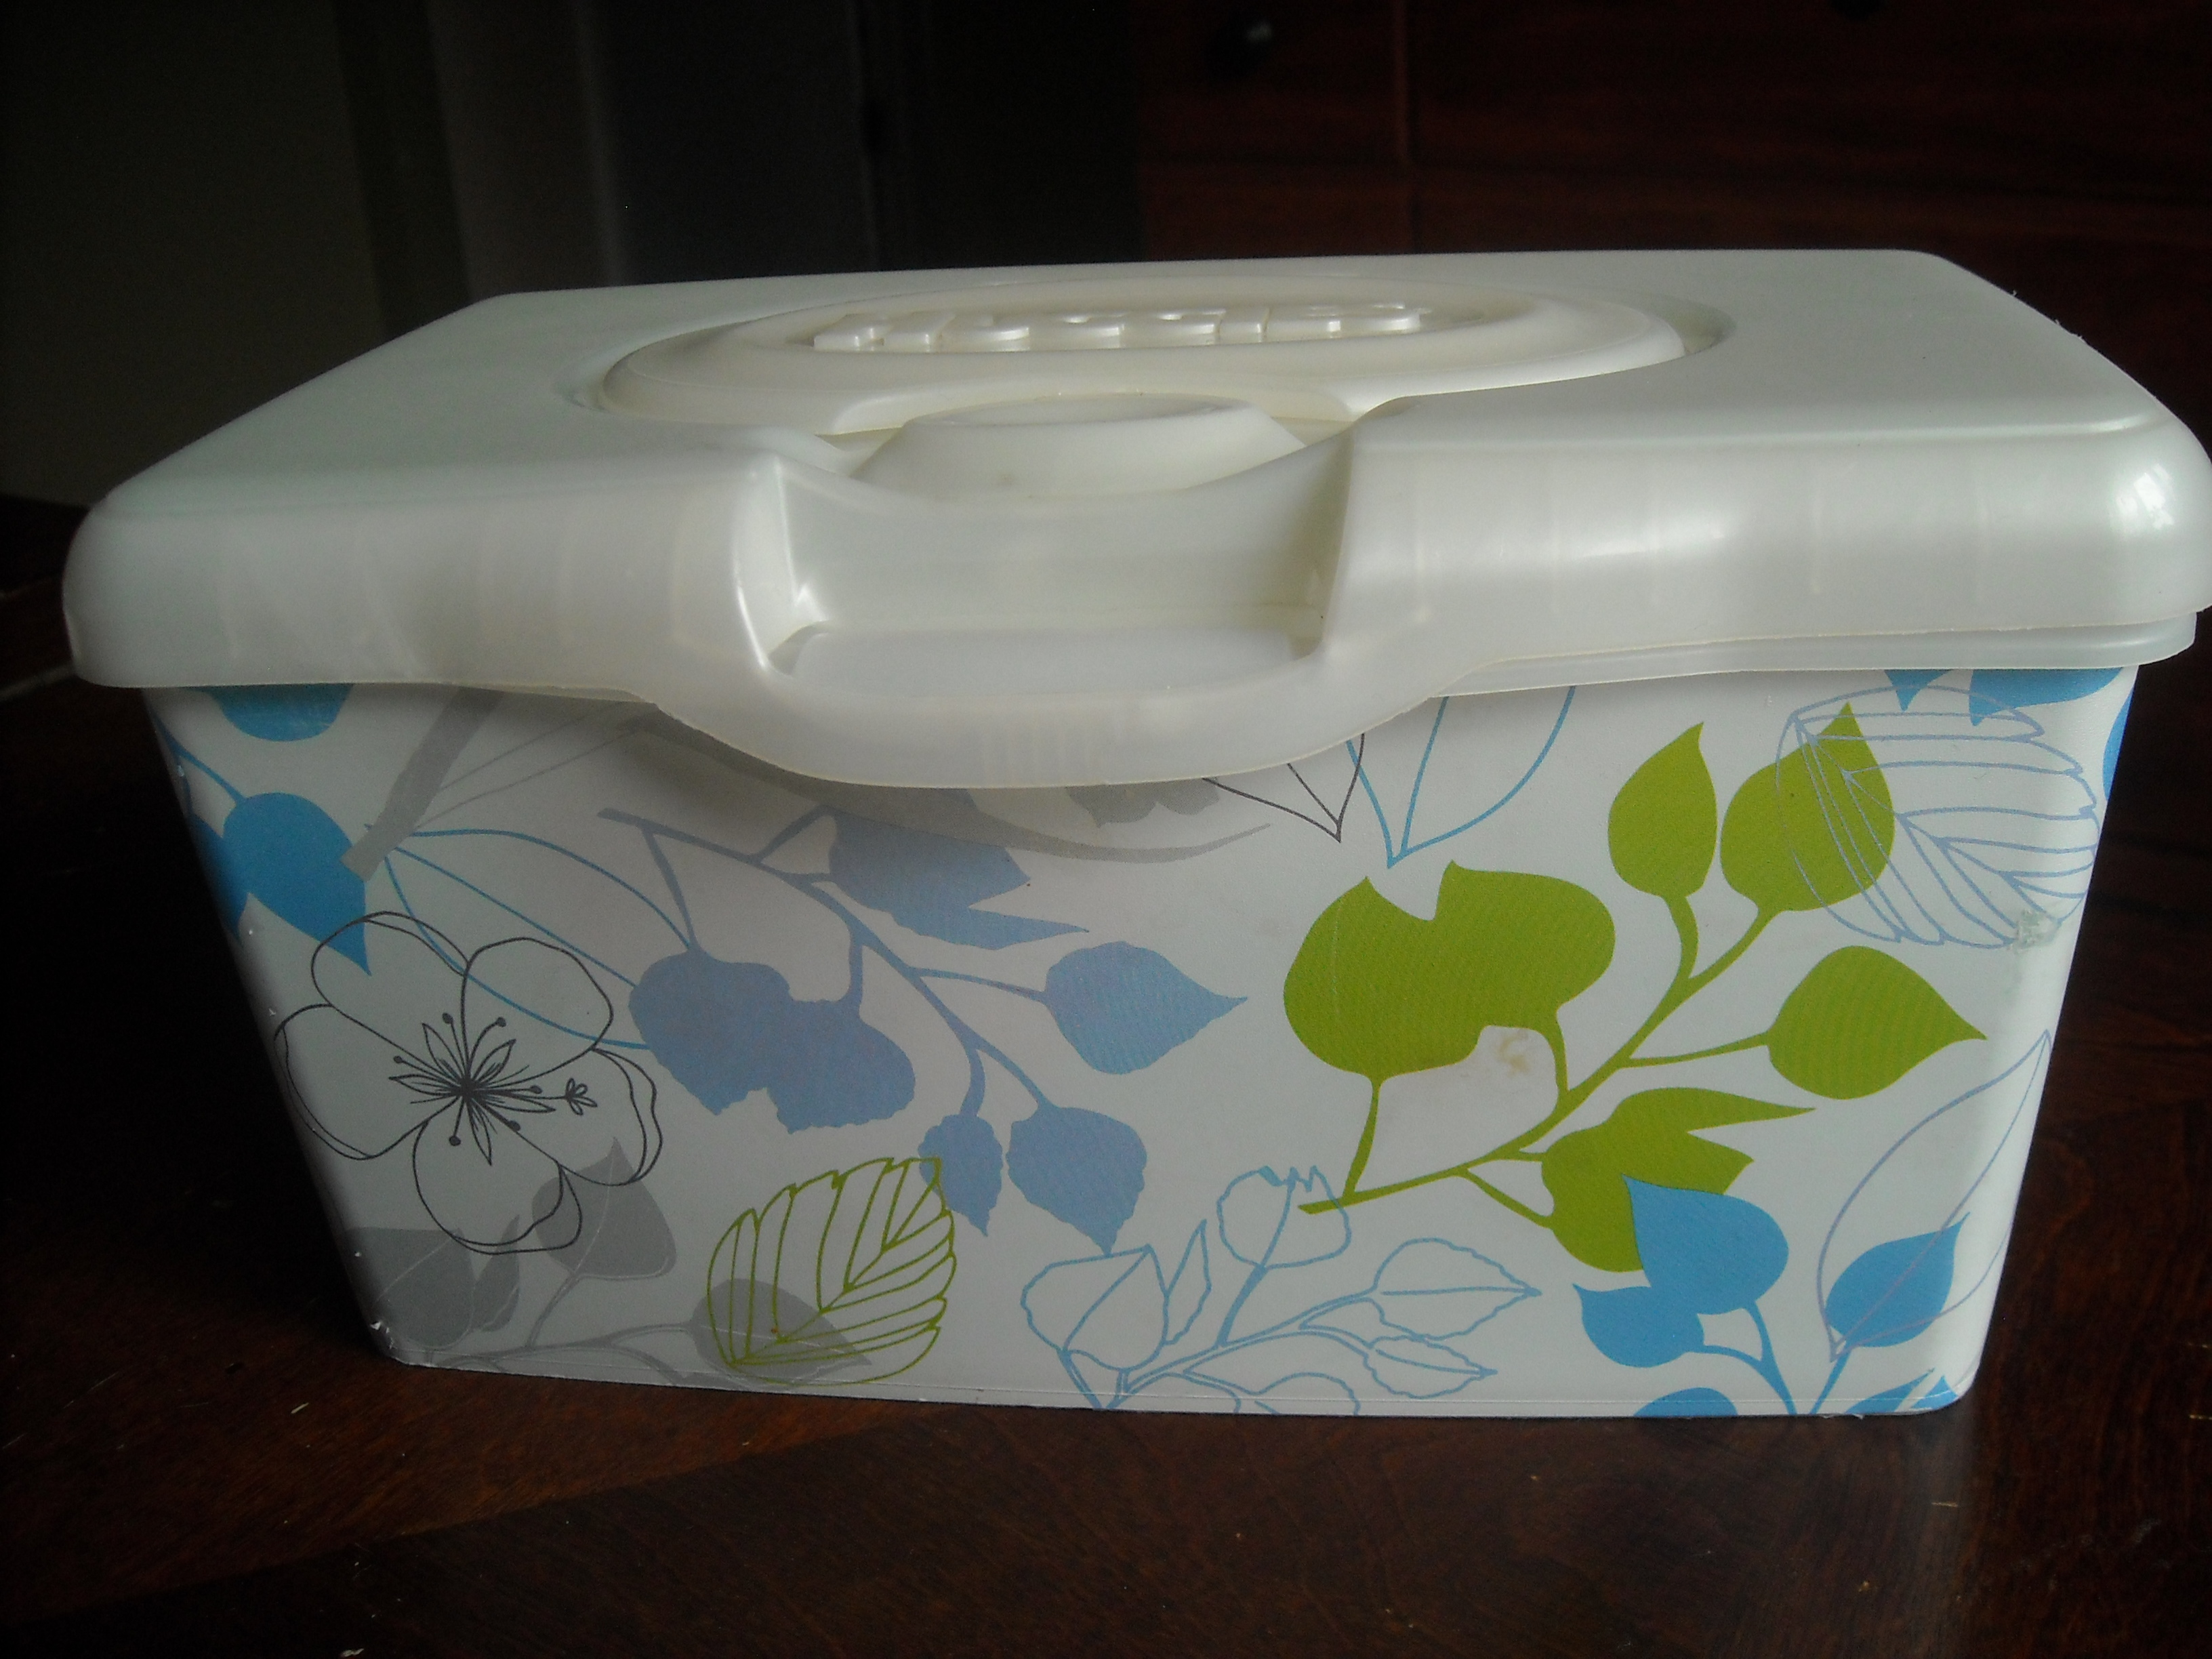 35 Smart Ways To Reuse Baby Wipes Containers Mommysavers